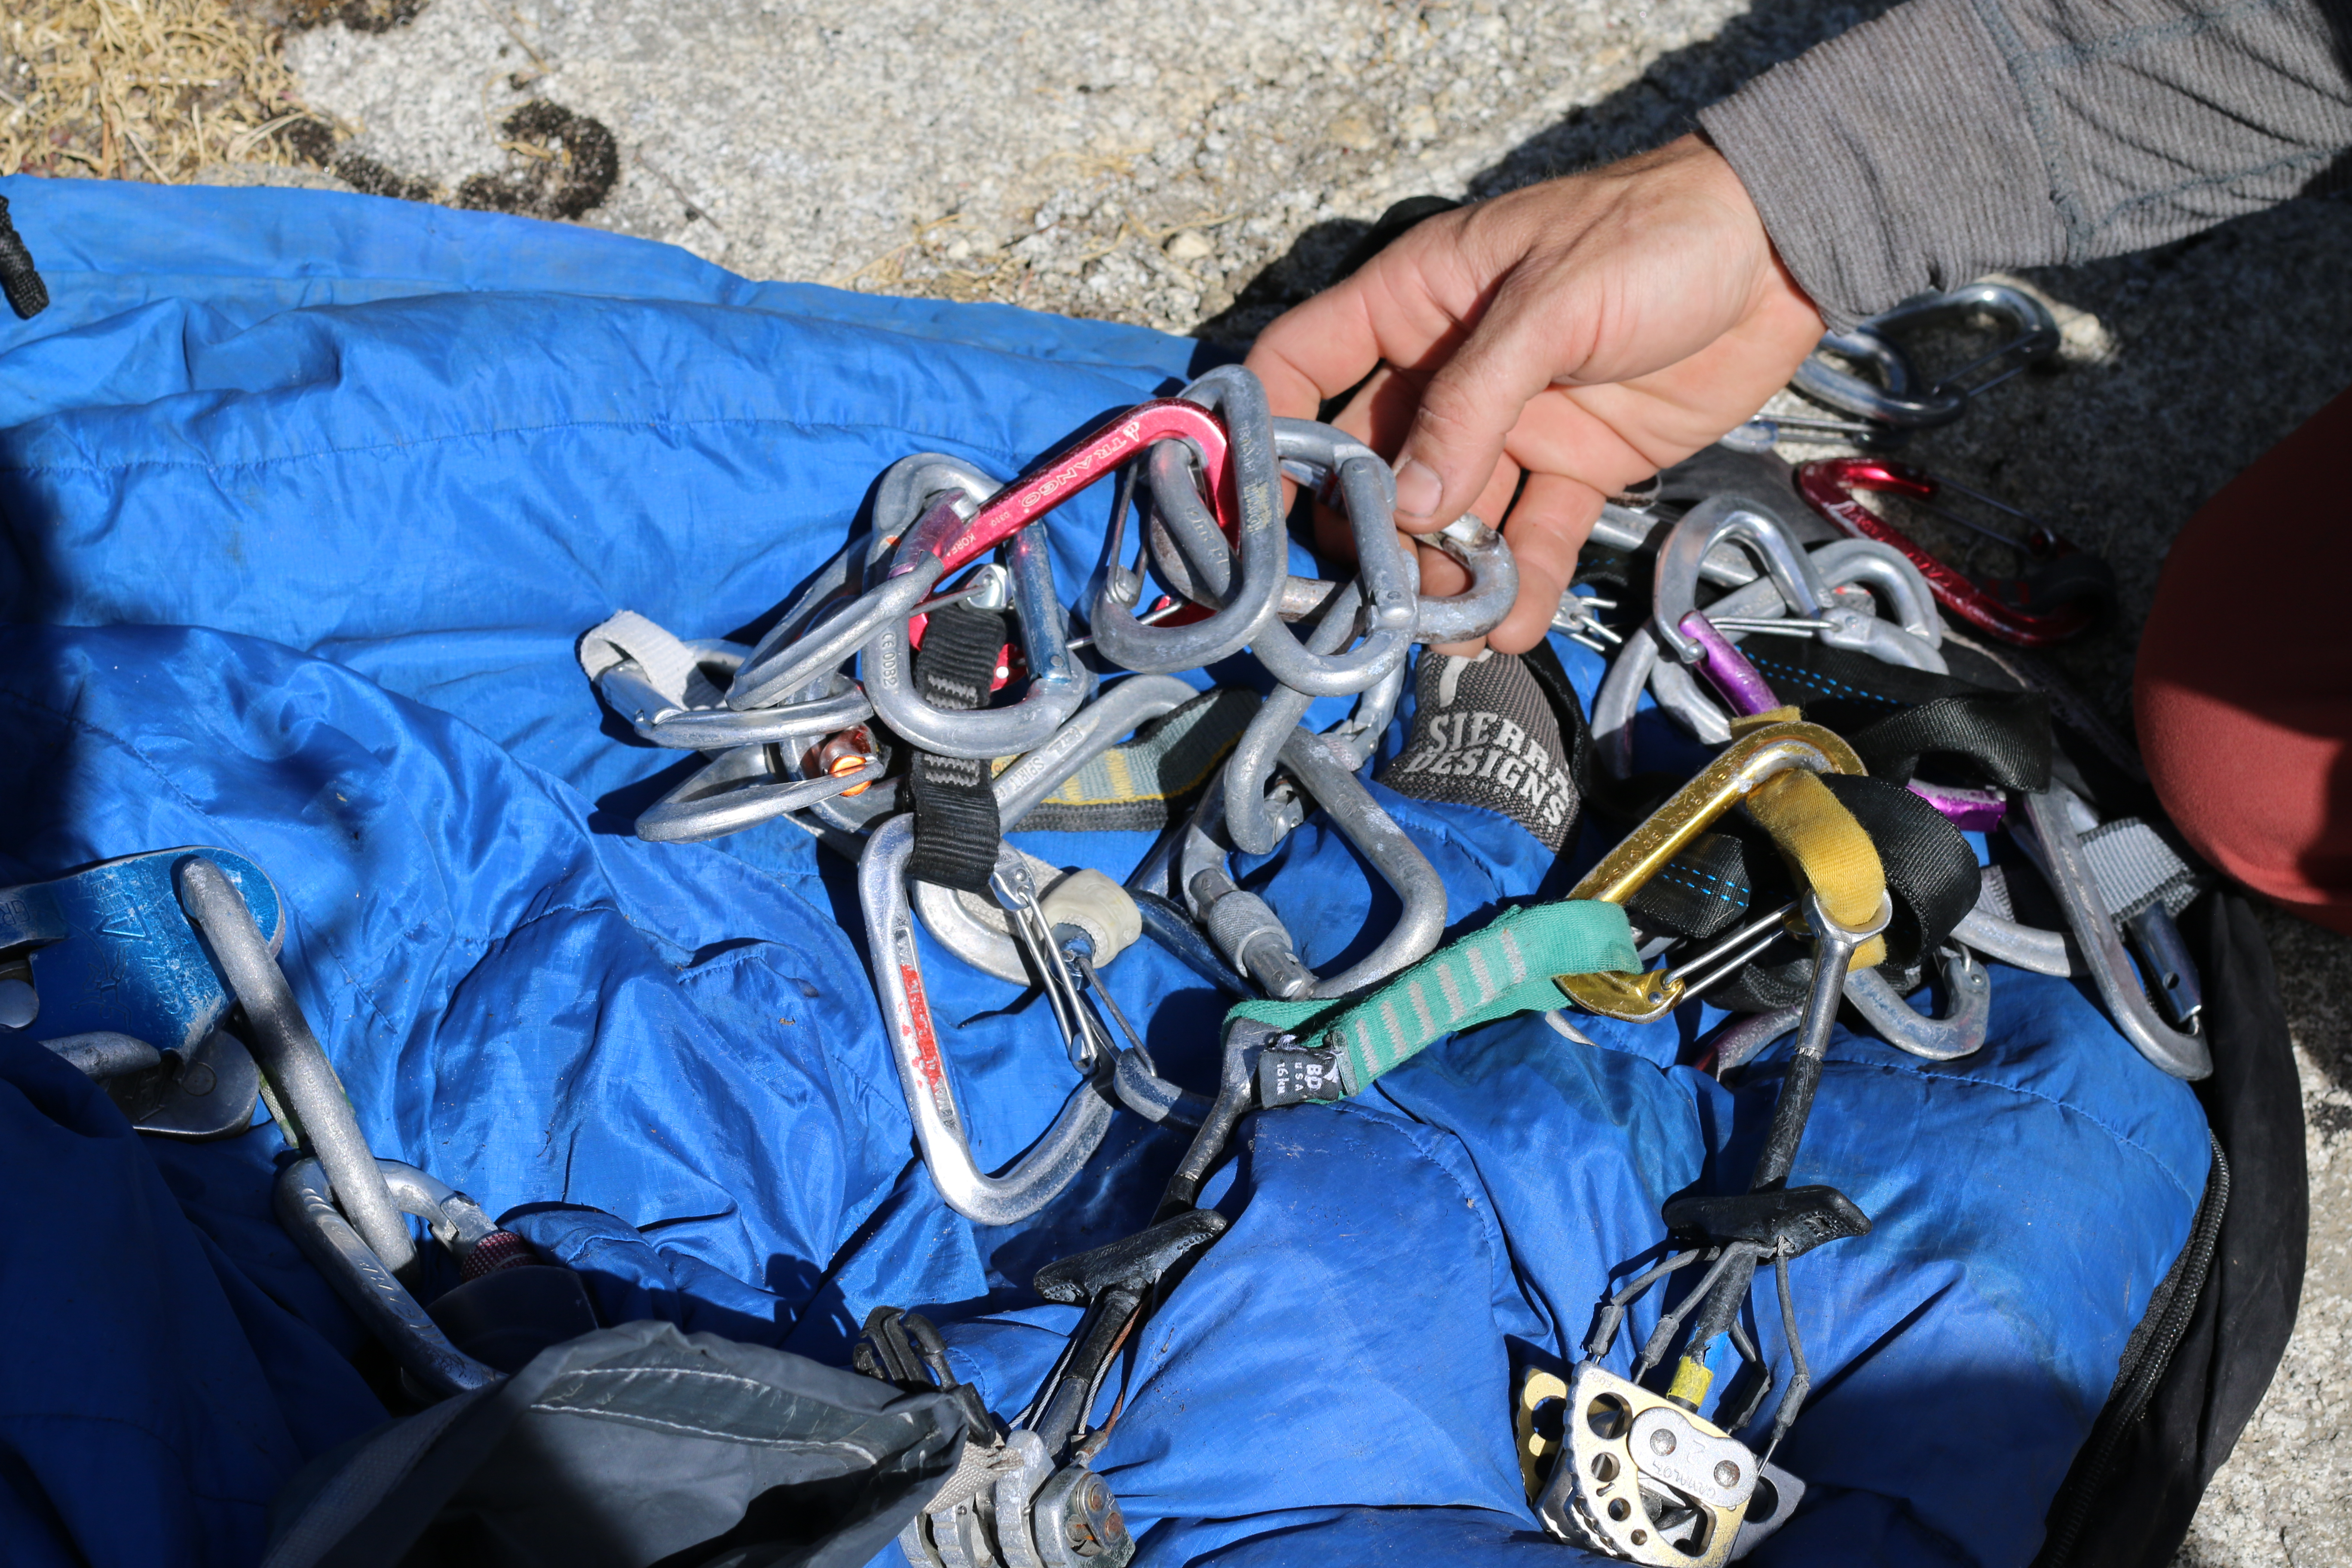 Old Cams and carabiners on a sling